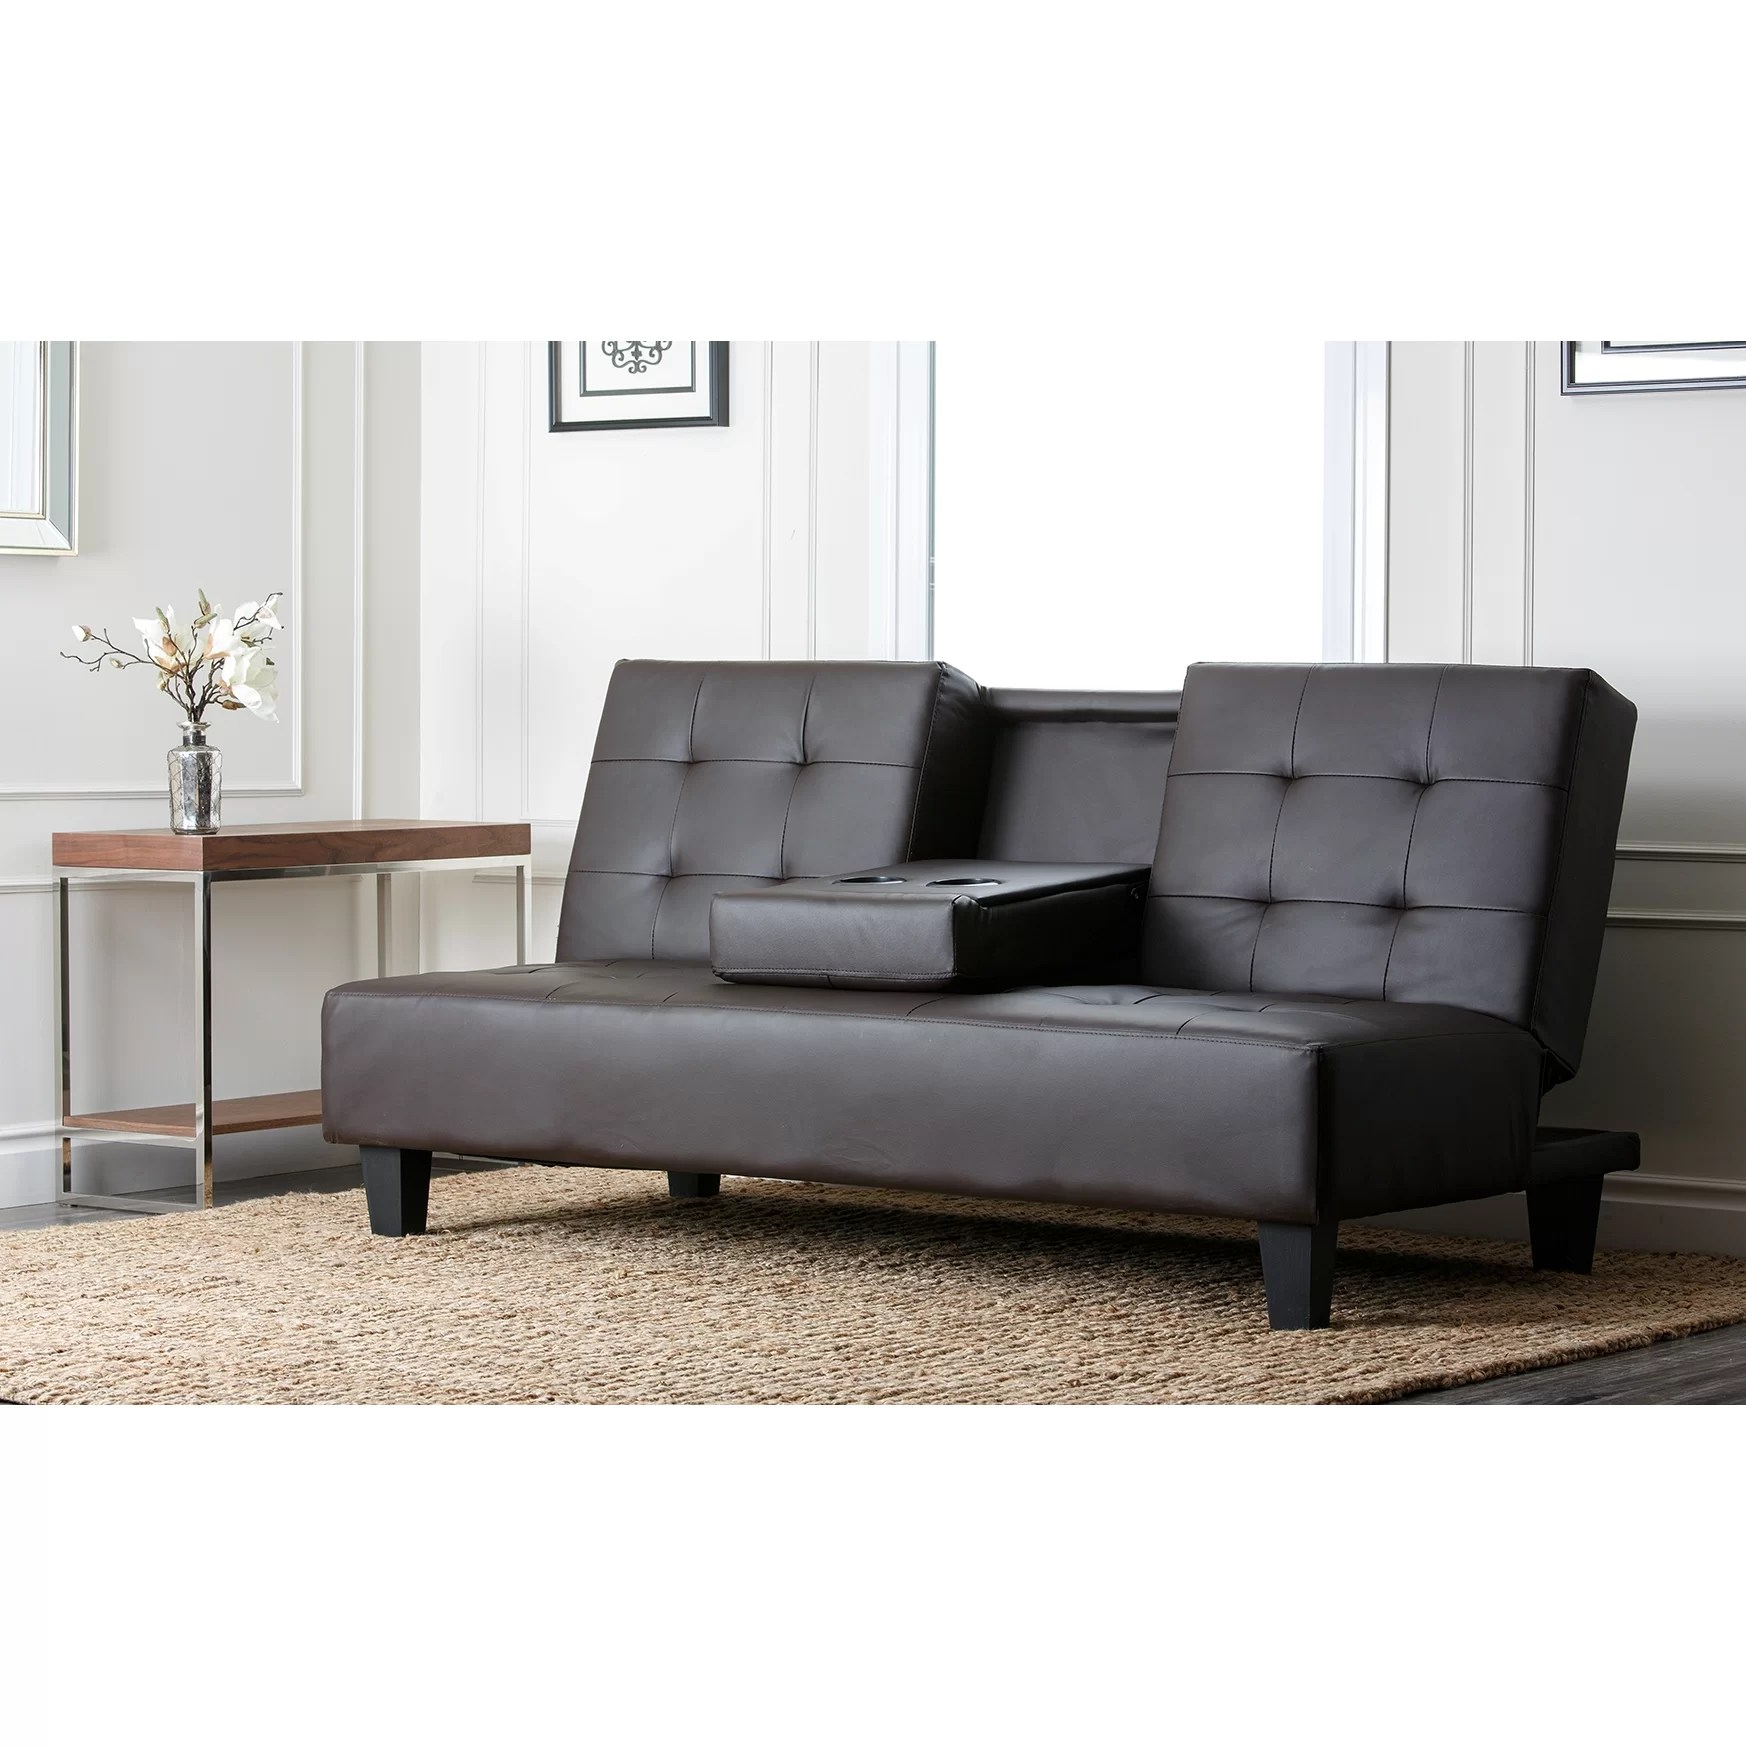 furniture row sofa sleepers maze rattan kingston corner dining set mercury bernal sleeper and reviews wayfair